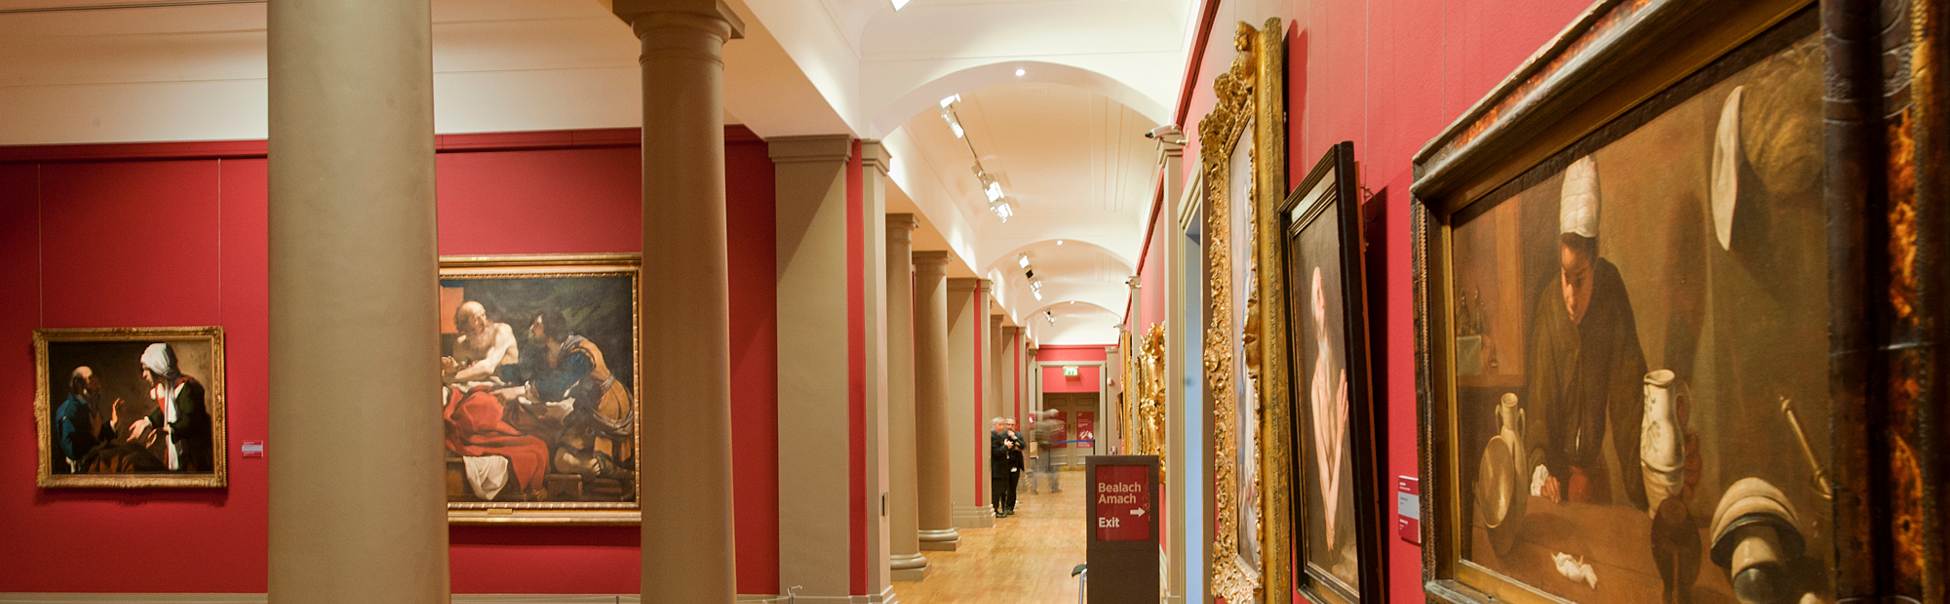 View of the collection of the National Gallery of Ireland in European Art exhibit dating from 1600 to 1700.